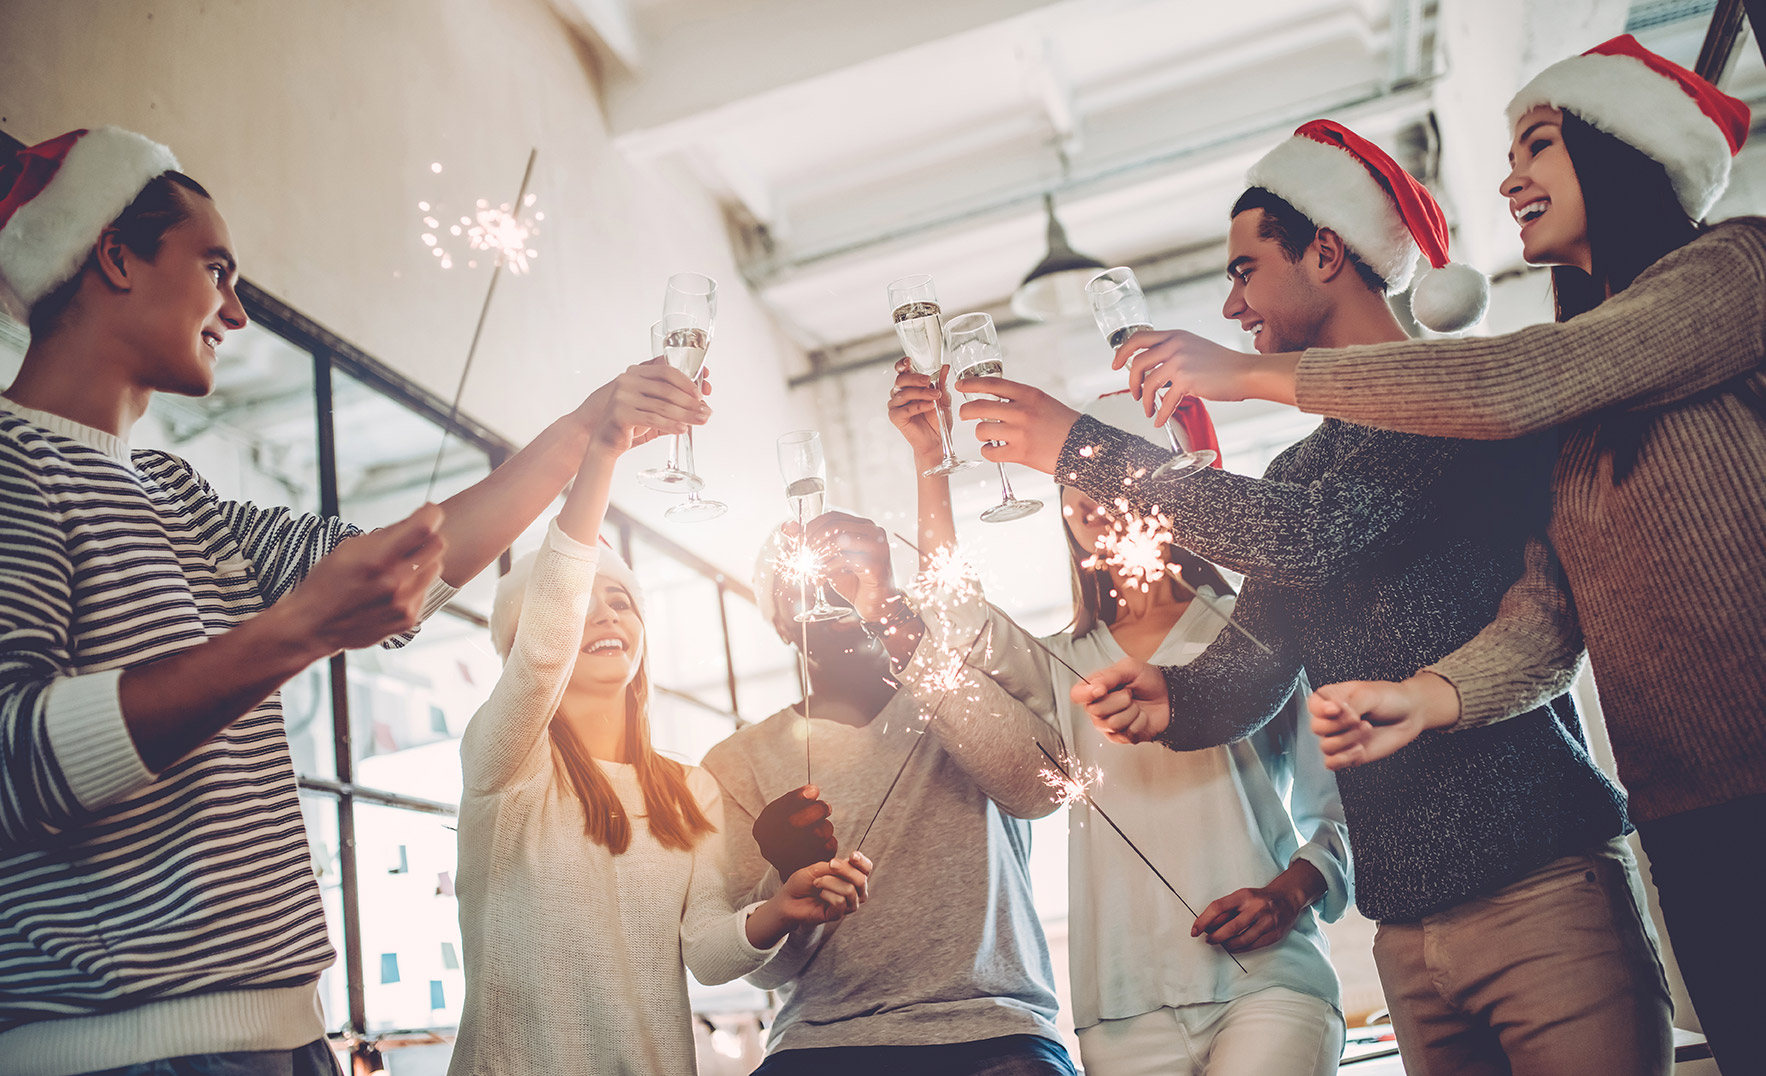 Can I claim a Christmas party as a business expense?